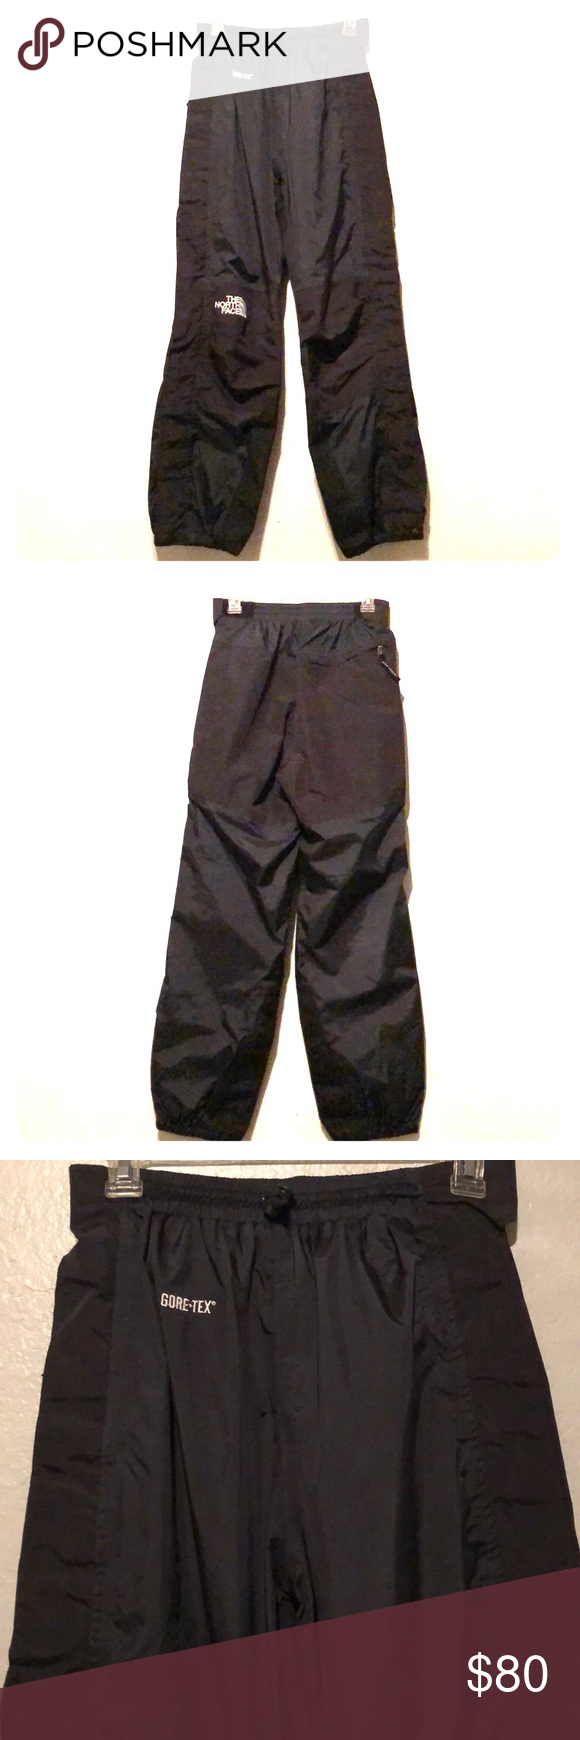 The North Face Gore Tex Snowboard Ski Pants Women S Size Medium 8 10 The North Face Size Chart Is Shown In Photos North Face Pants Ski Pants Ski Pants Women